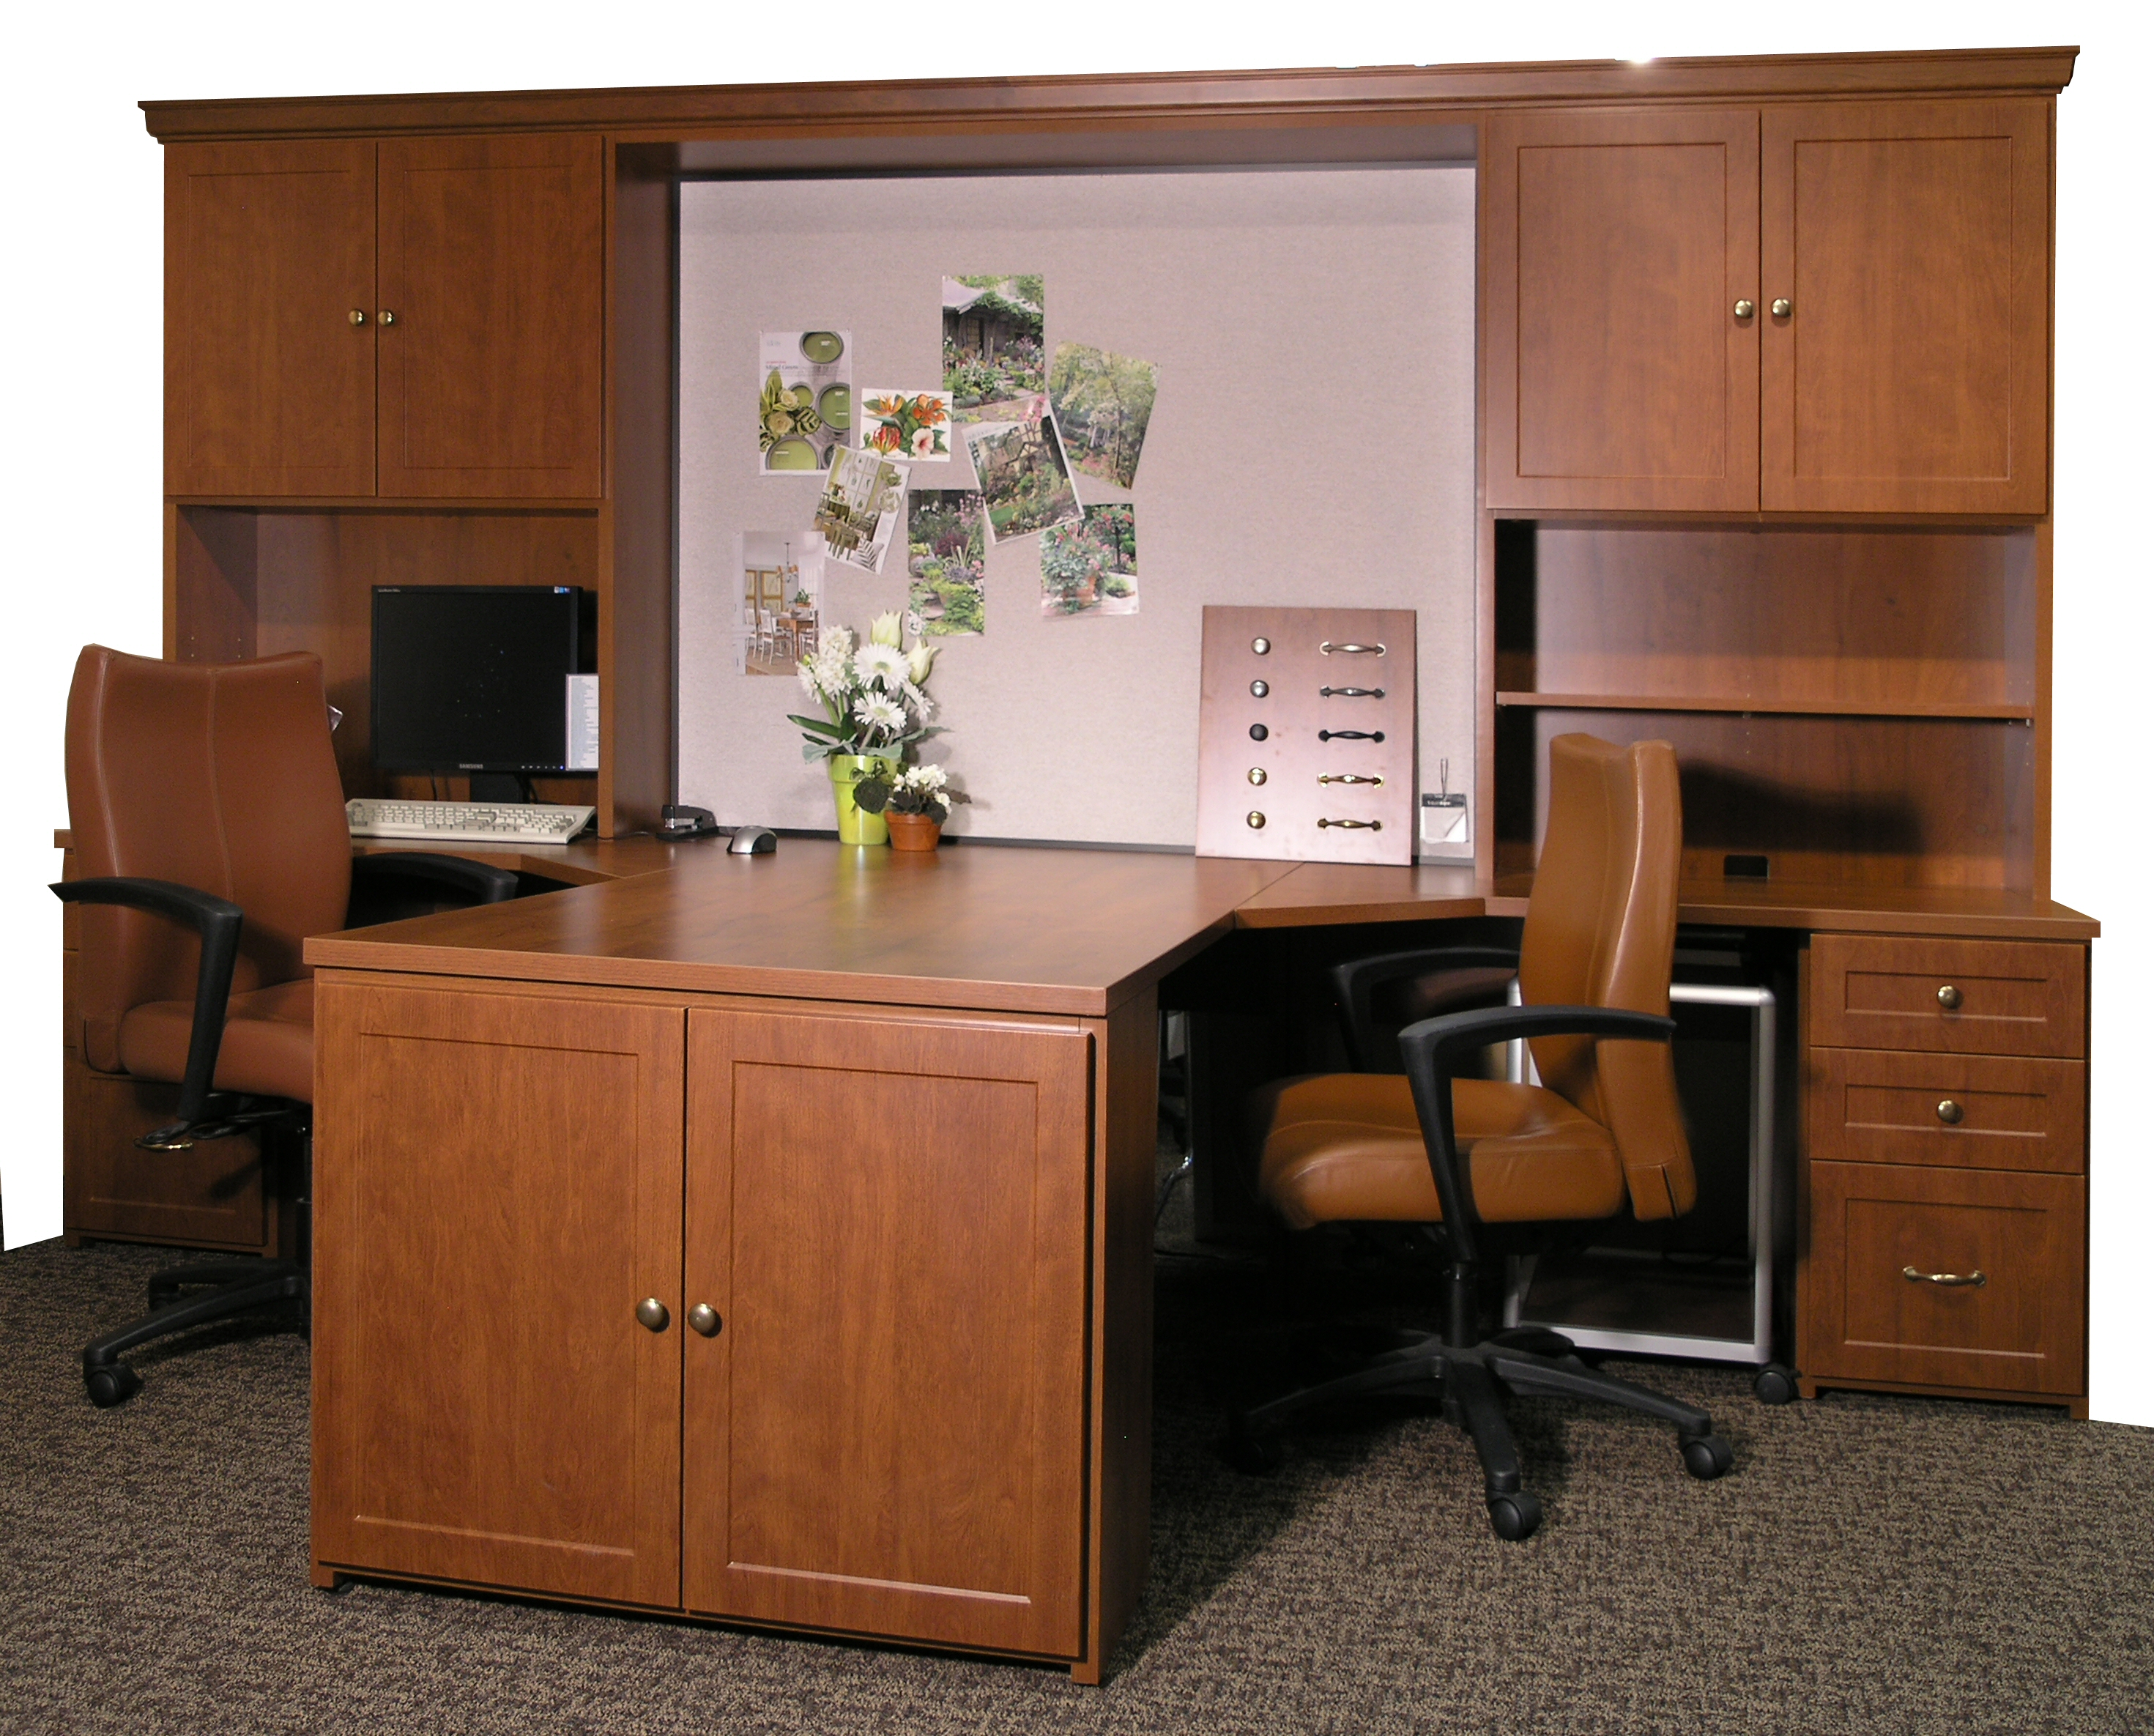 Luxury  About Home Office On Pinterest  Partners Desk Offices And Desks